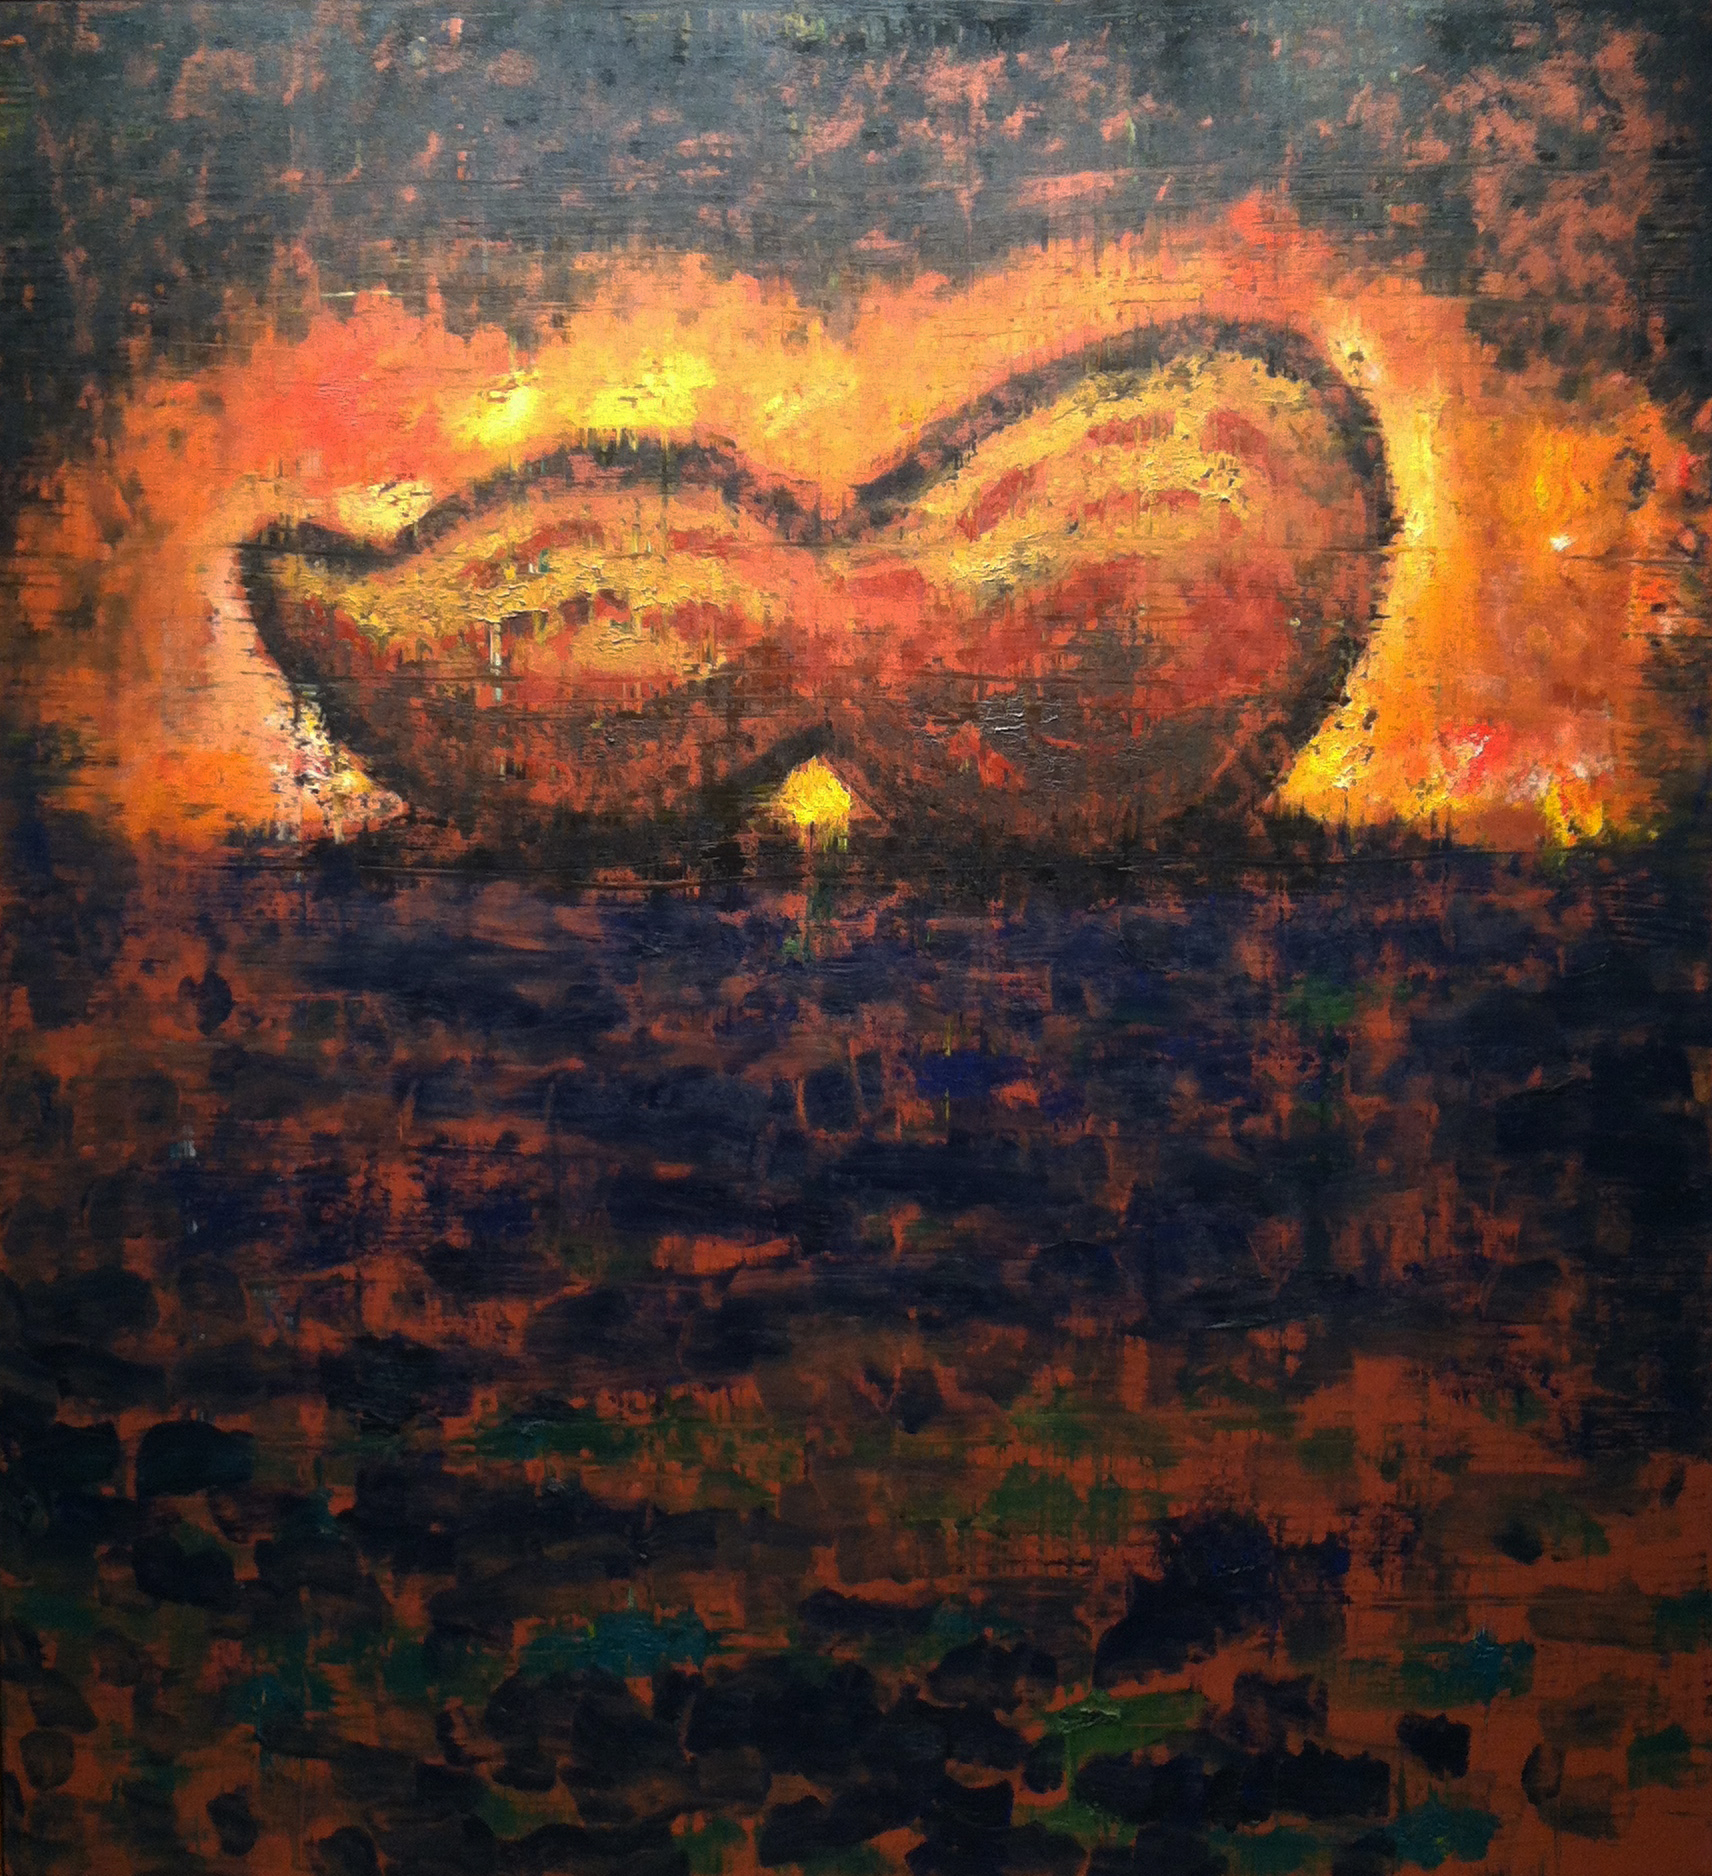 Peanut , 1984-85 oil on canvas, 72 x 66 inches